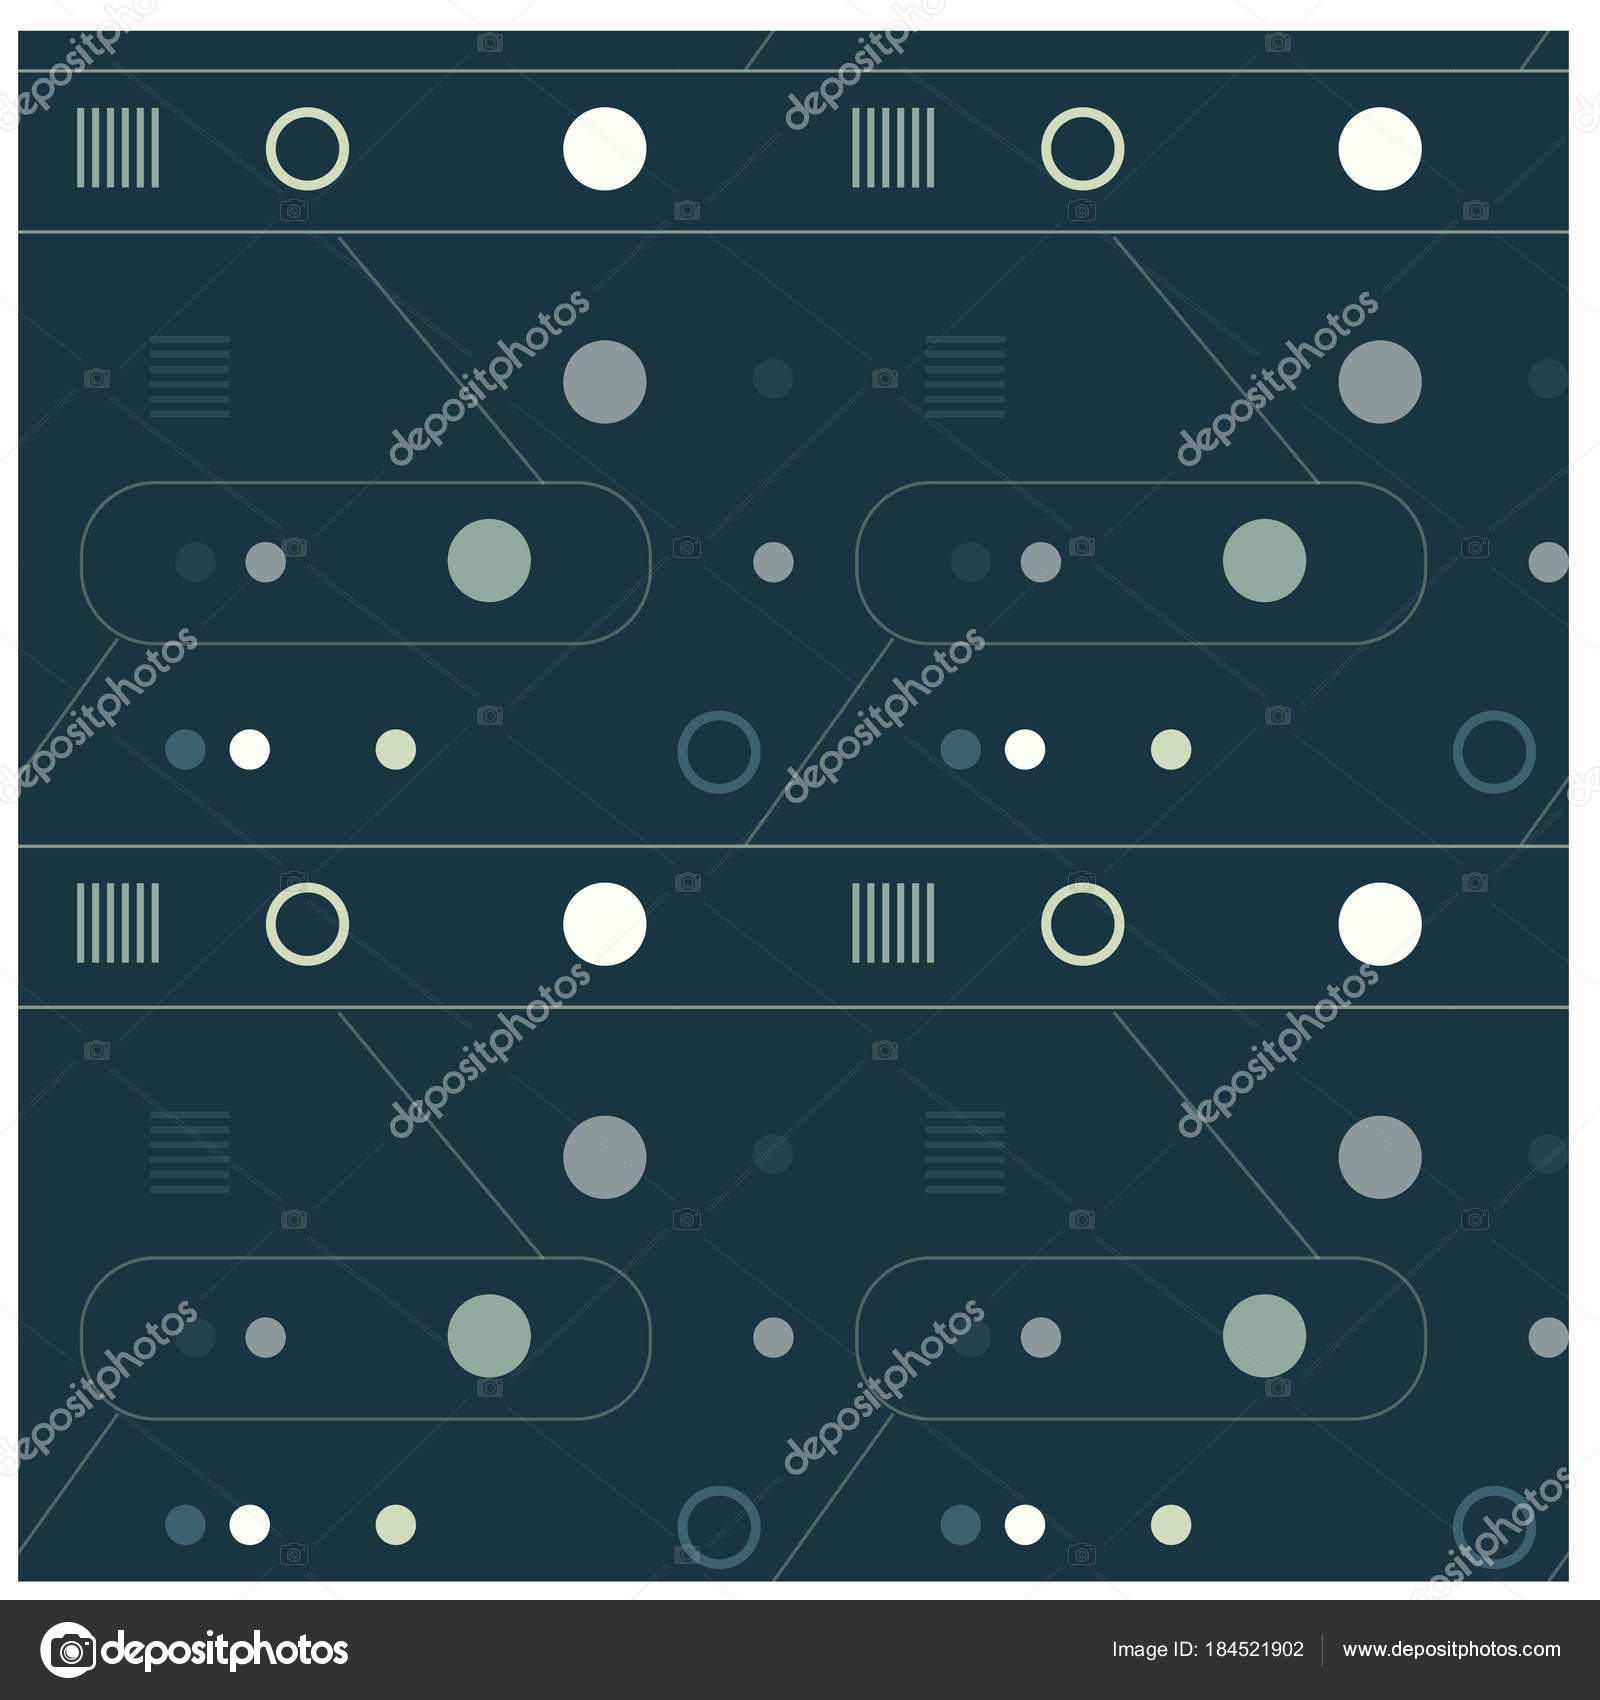 mechanism and abstract interface seamless pattern stock vector rh depositphotos com